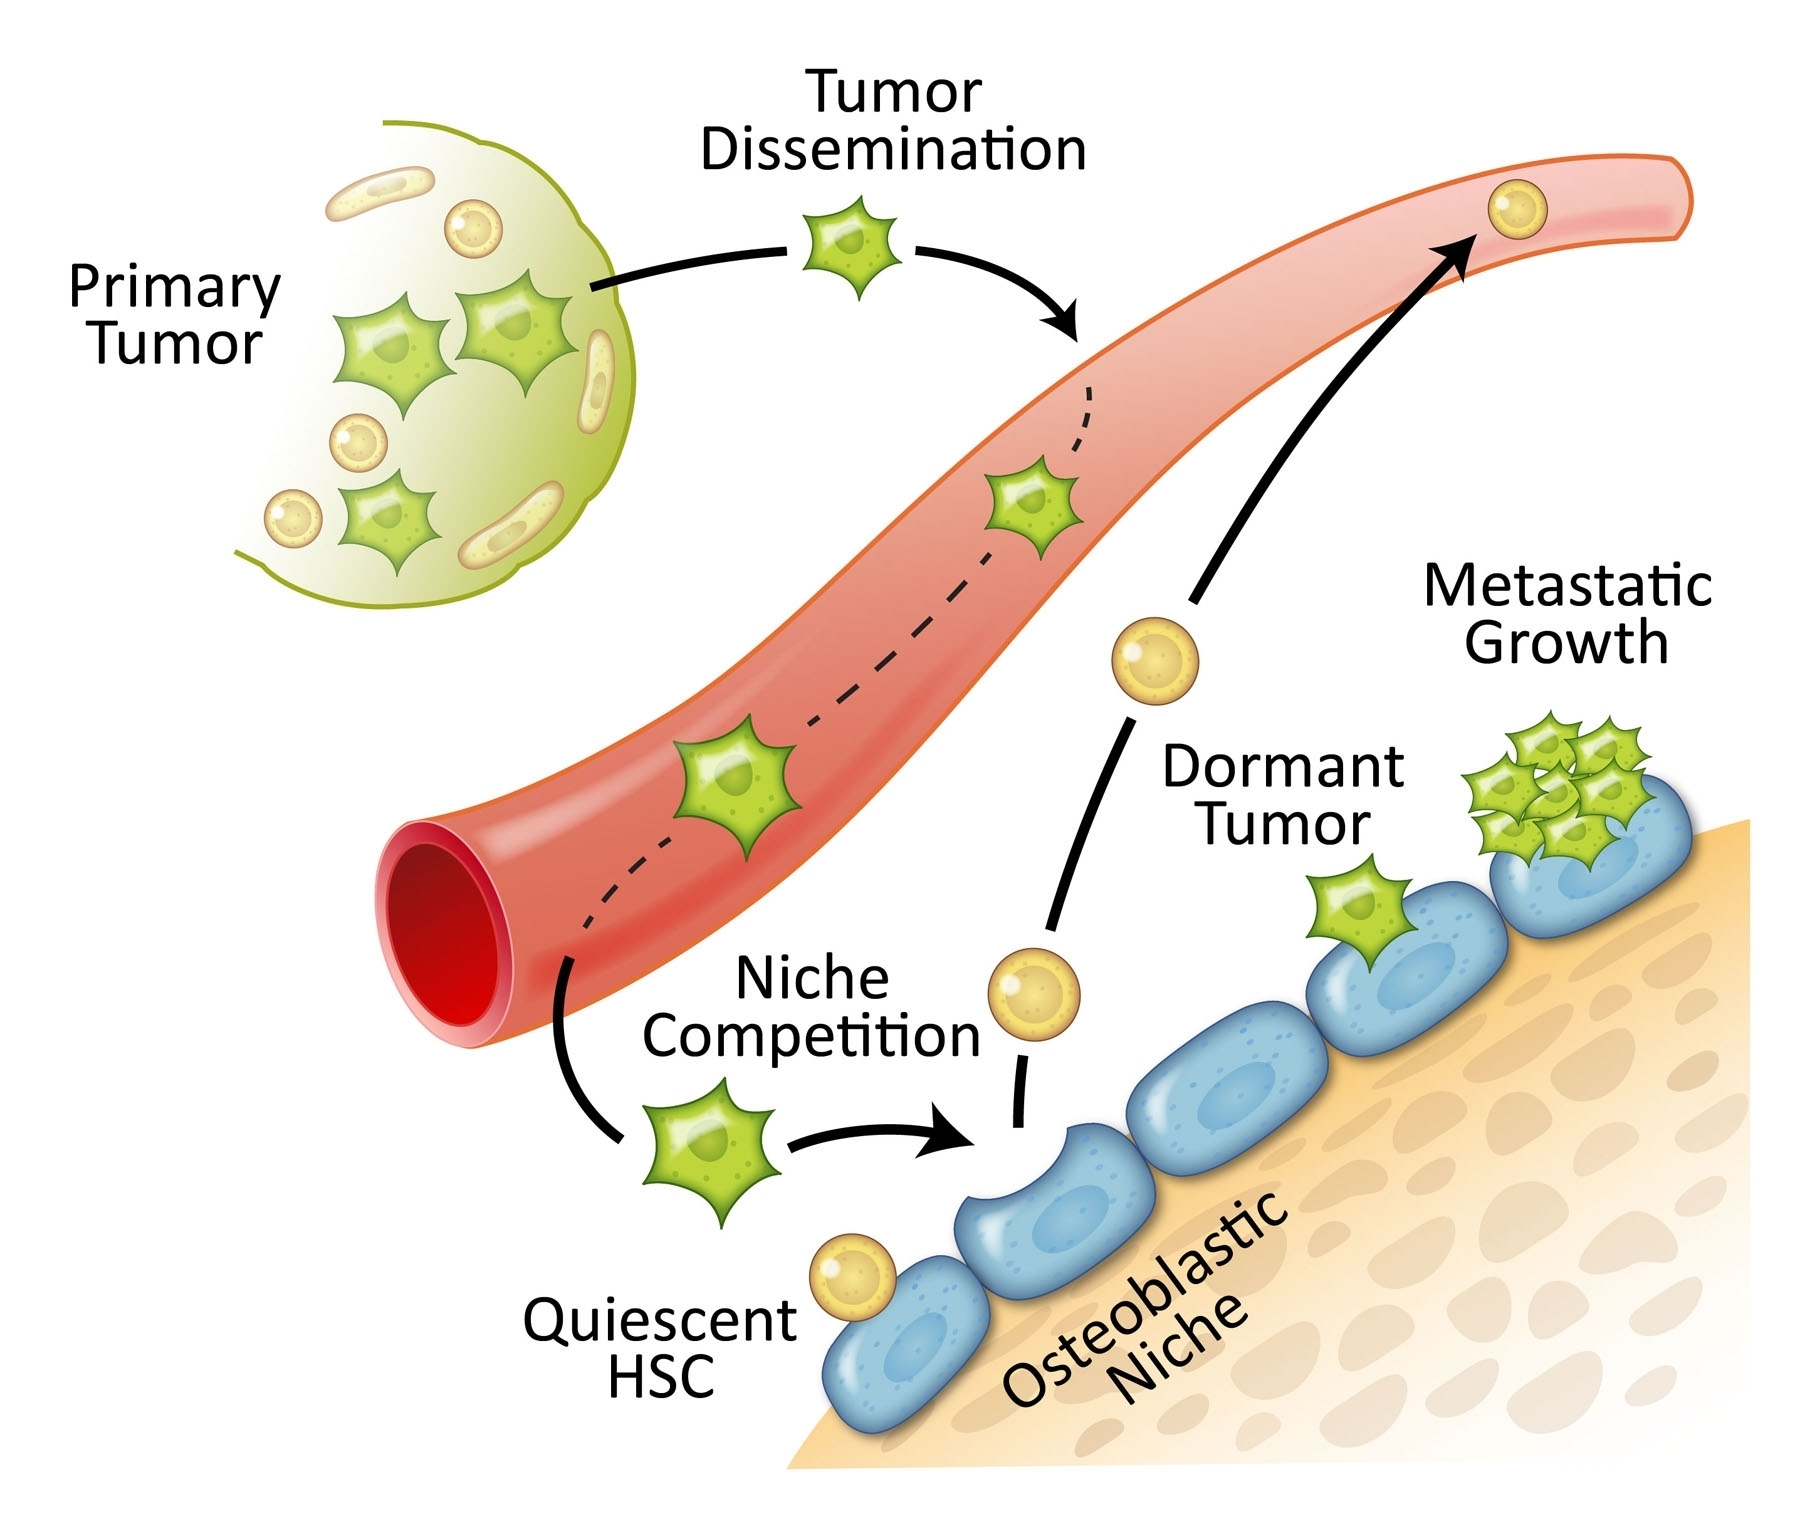 Prostate cancer cells in the bone marrow niche